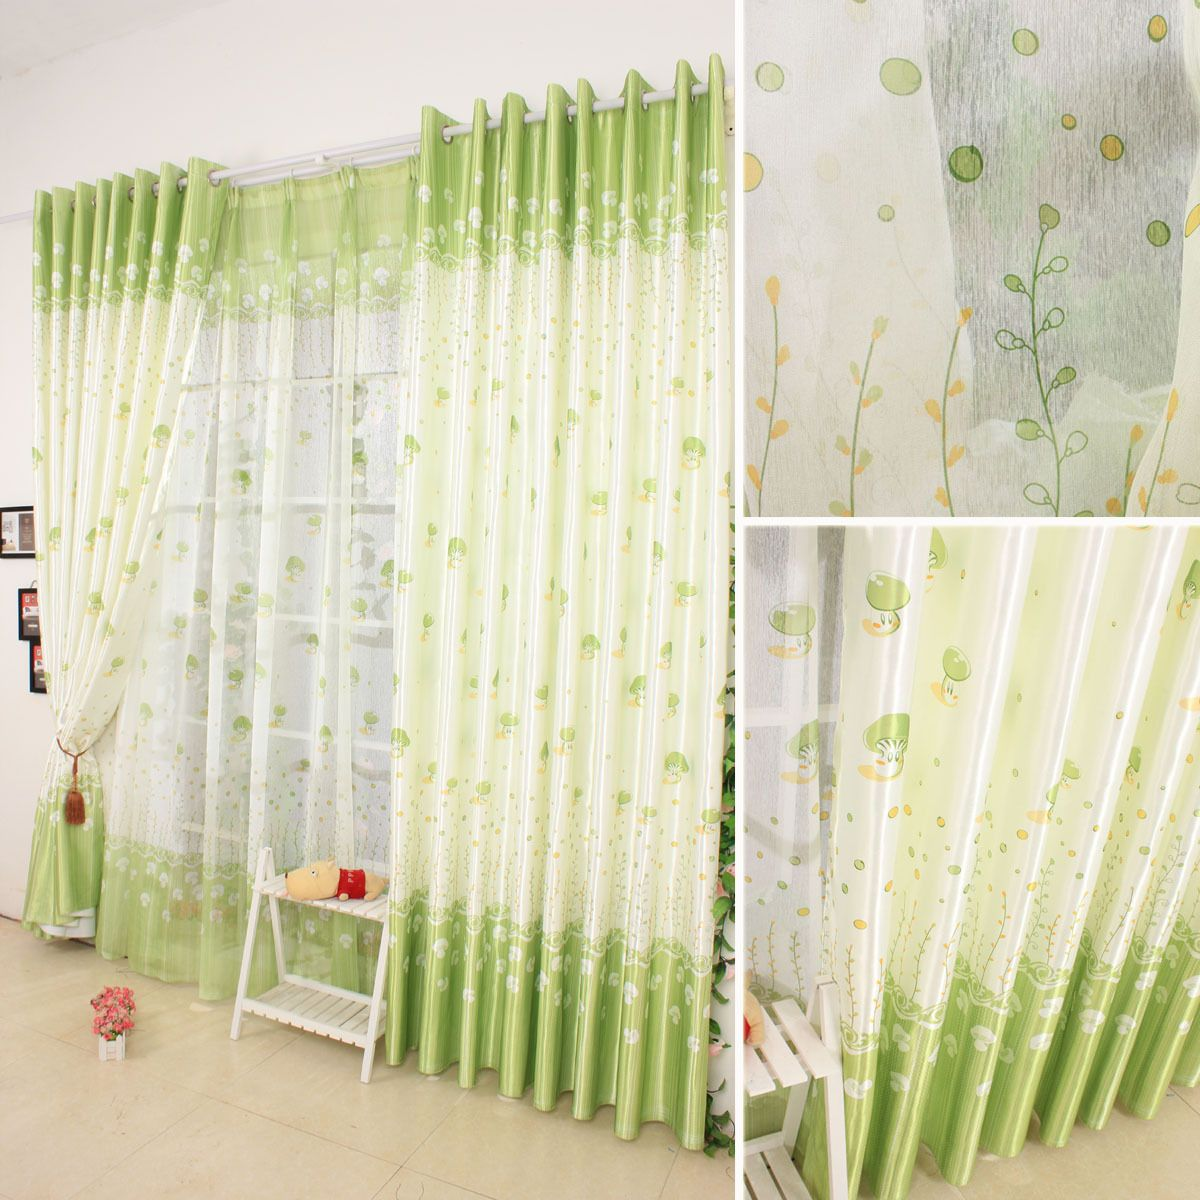 green curtains for bedroom green curtains bedroom modern curtain styles ideas rooms curtain design ideas - Curtain Design Ideas